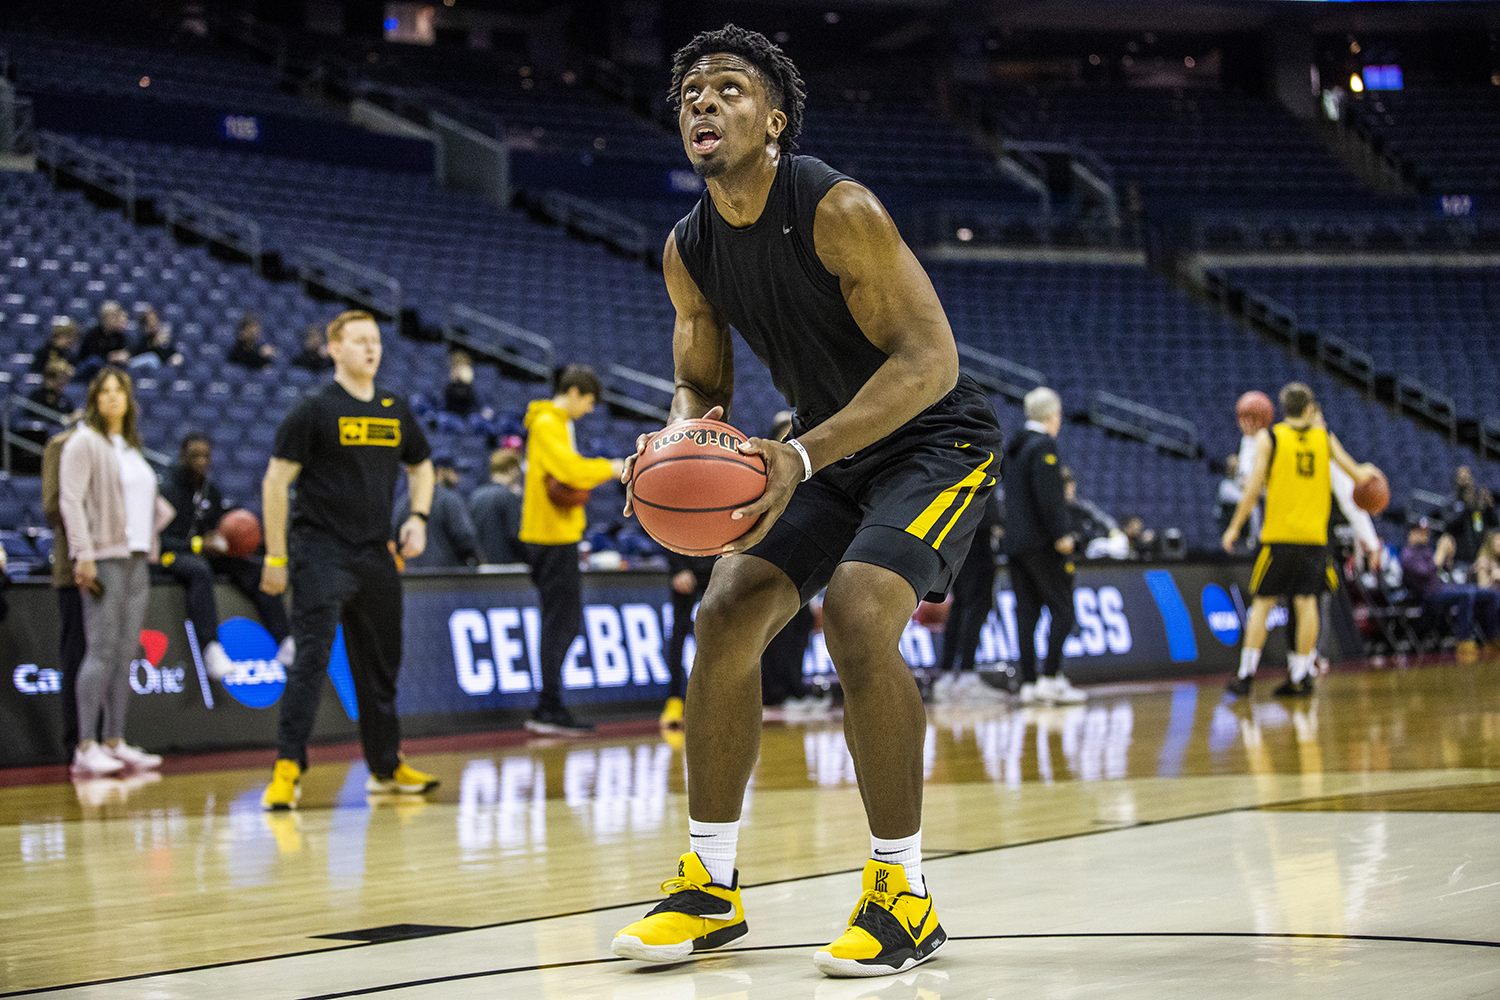 Iowa forward Tyler Cook prepares to shoot the ball during the Iowa basketball practice at Nationwide Arena in Columbus, Ohio on Thursday, March 21, 2019. The Hawkeyes will compete against the Cincinnati Bearcats tomorrow in the NCAA Tournament.